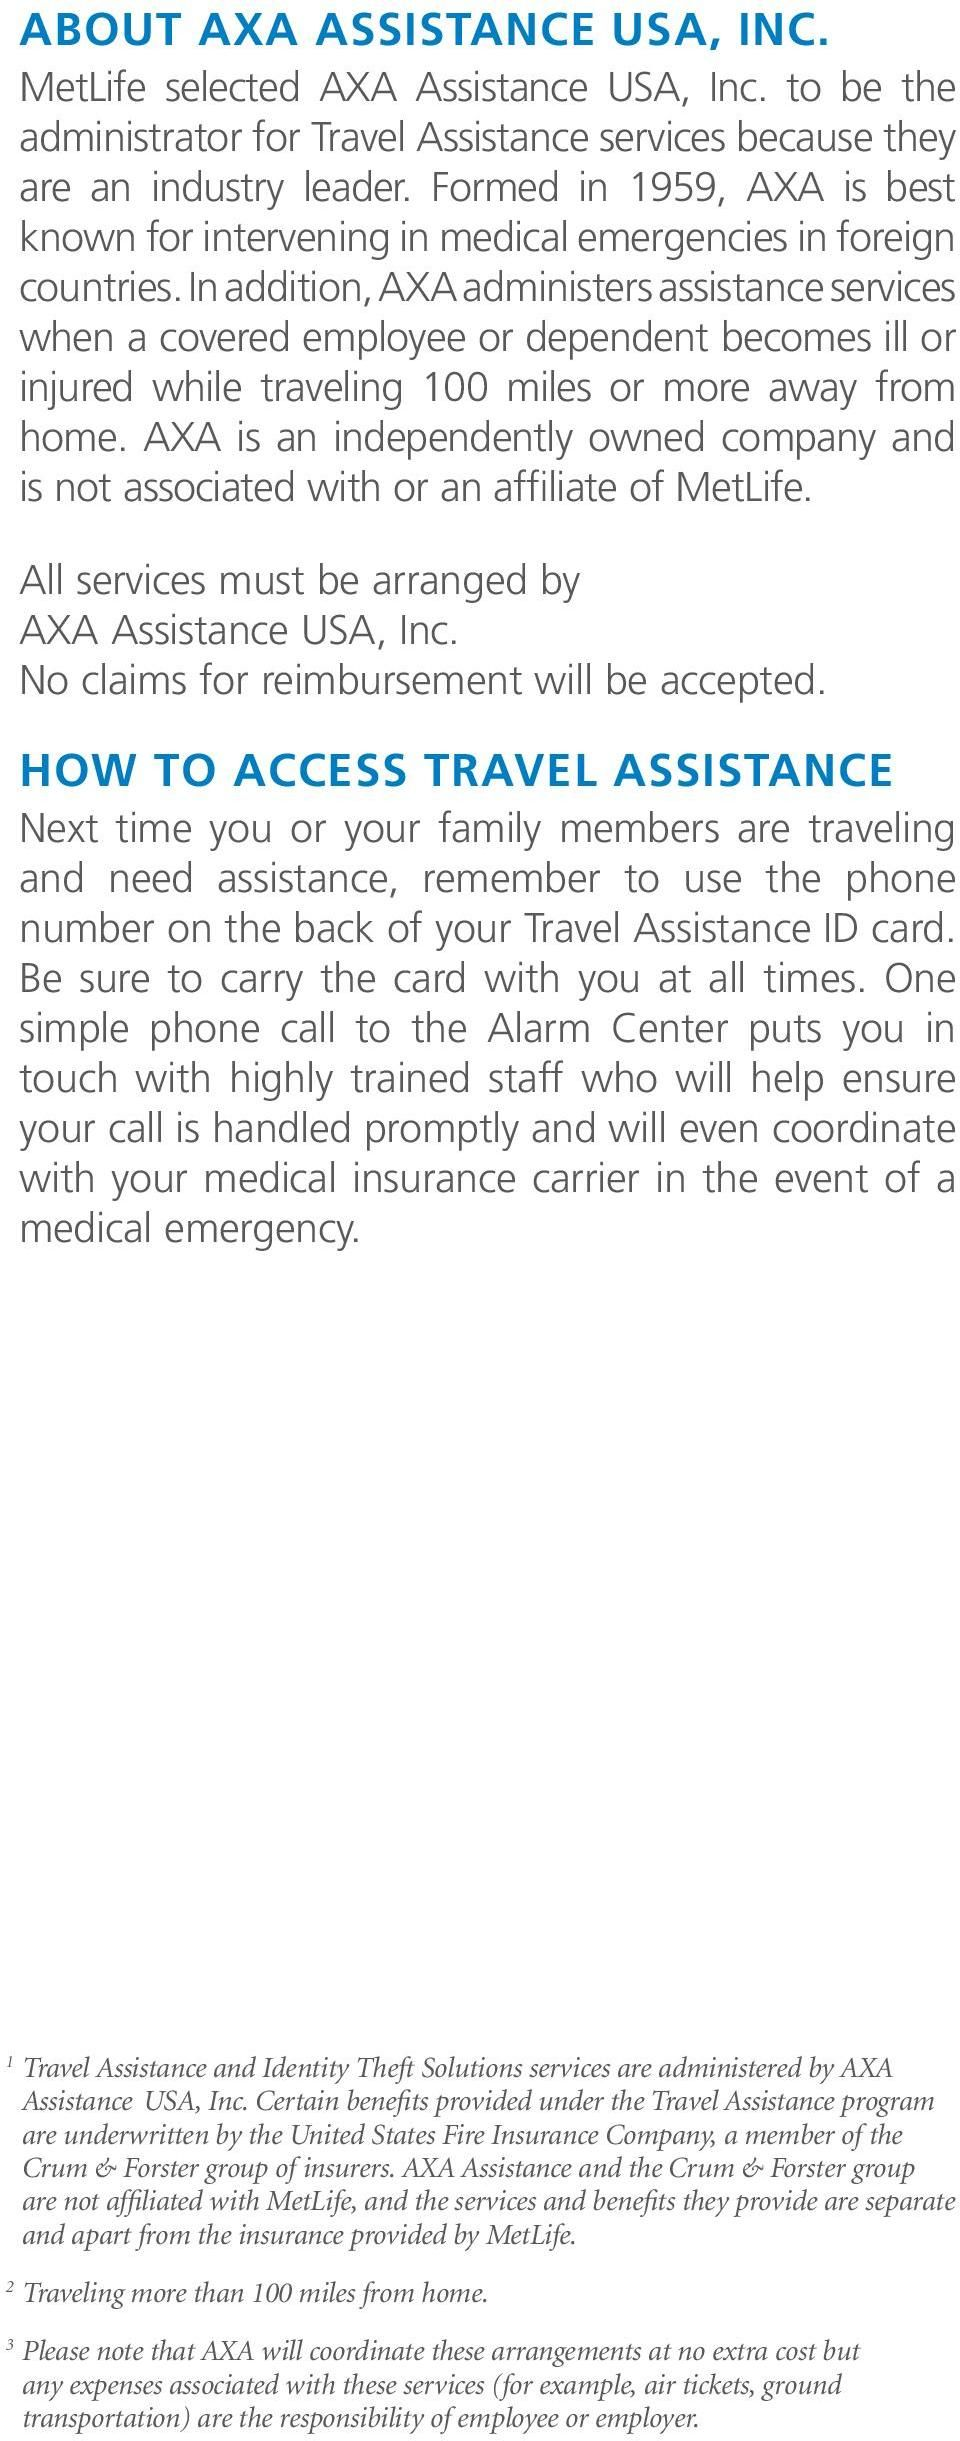 In addition, AXA administers assistance services when a covered employee or dependent becomes ill or injured while traveling 100 miles or more away from home.